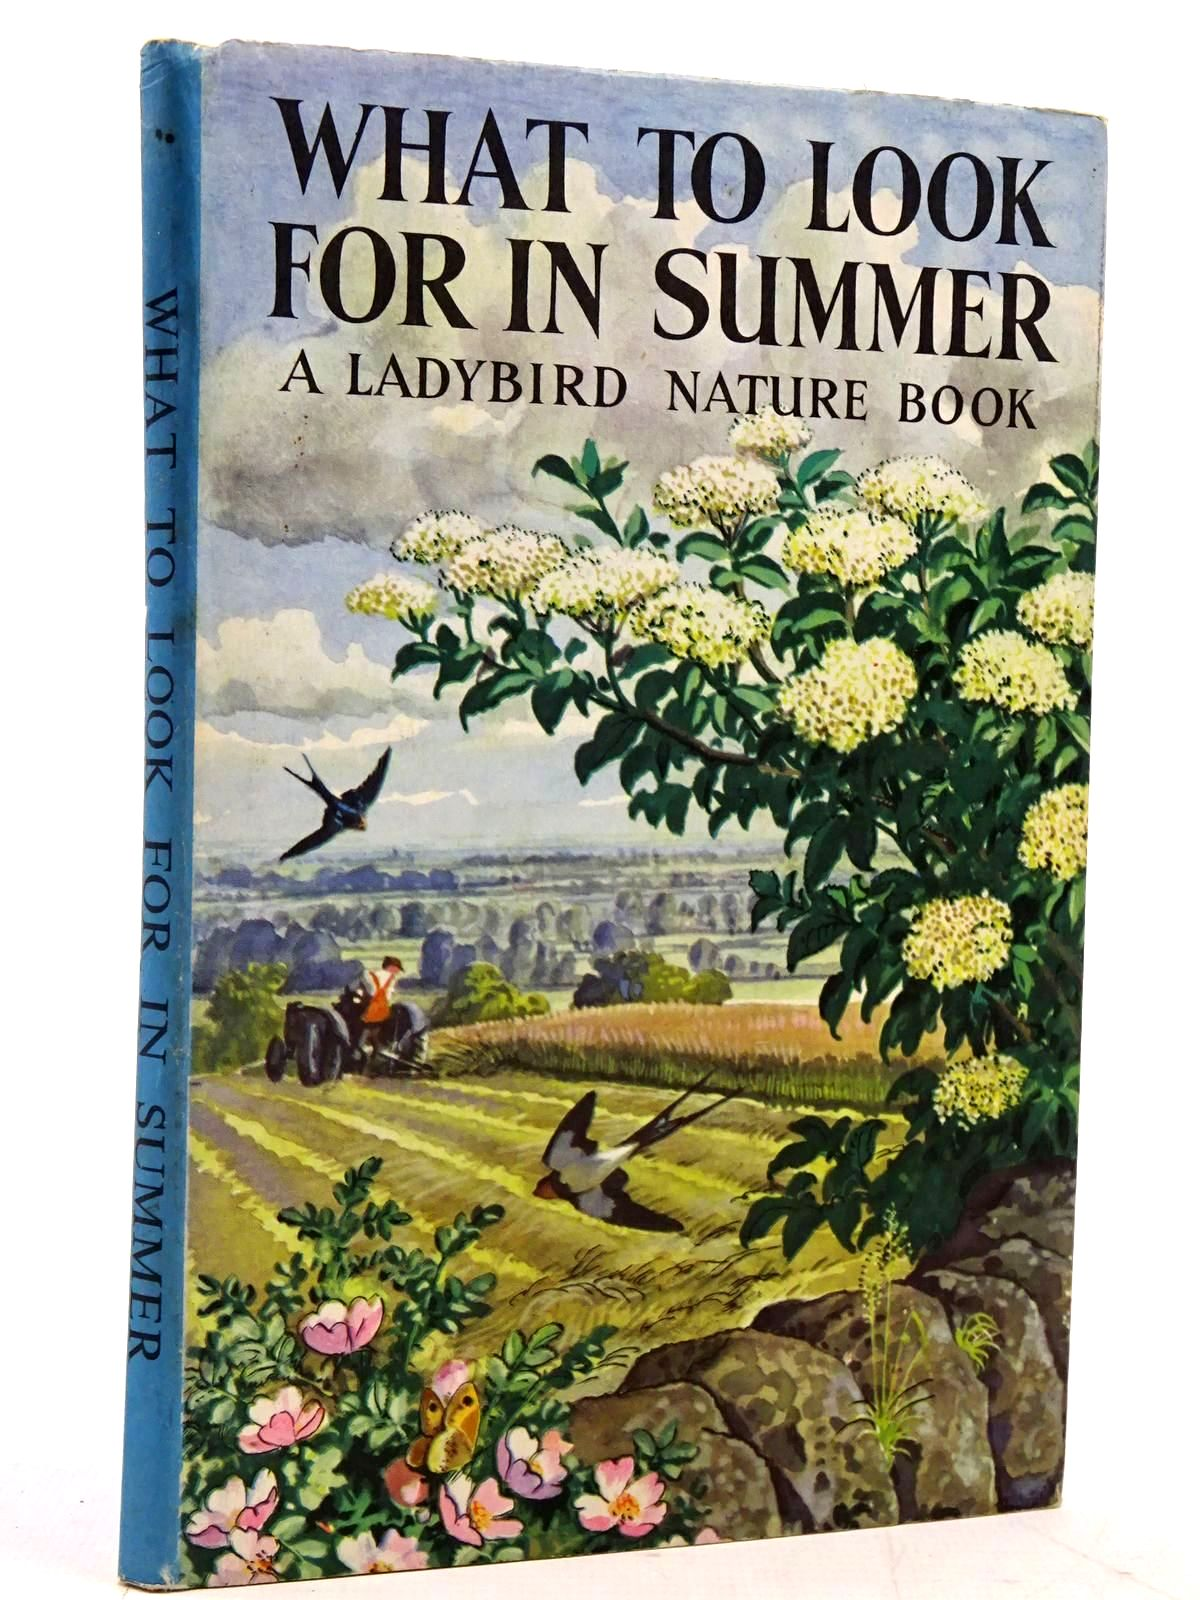 Photo of WHAT TO LOOK FOR IN SUMMER written by Watson, E.L. Grant illustrated by Tunnicliffe, C.F. published by Wills & Hepworth Ltd. (STOCK CODE: 2131167)  for sale by Stella & Rose's Books